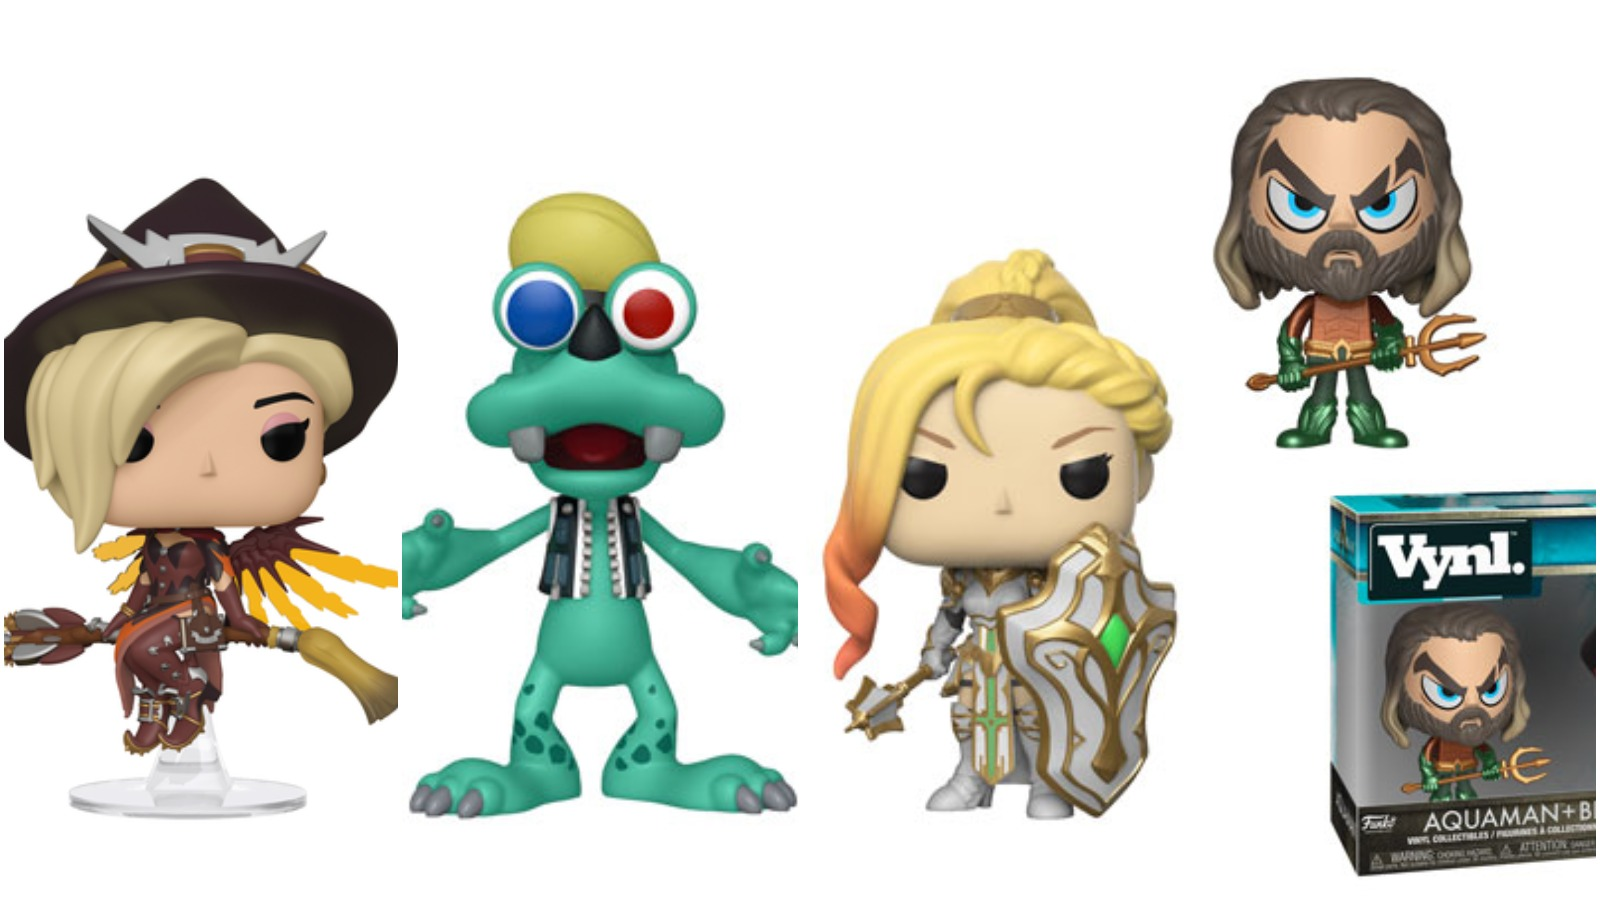 Funko Round-Up: Kingdom Hearts 3, Summoners War, Overwatch, and Aquaman! - Bleed...